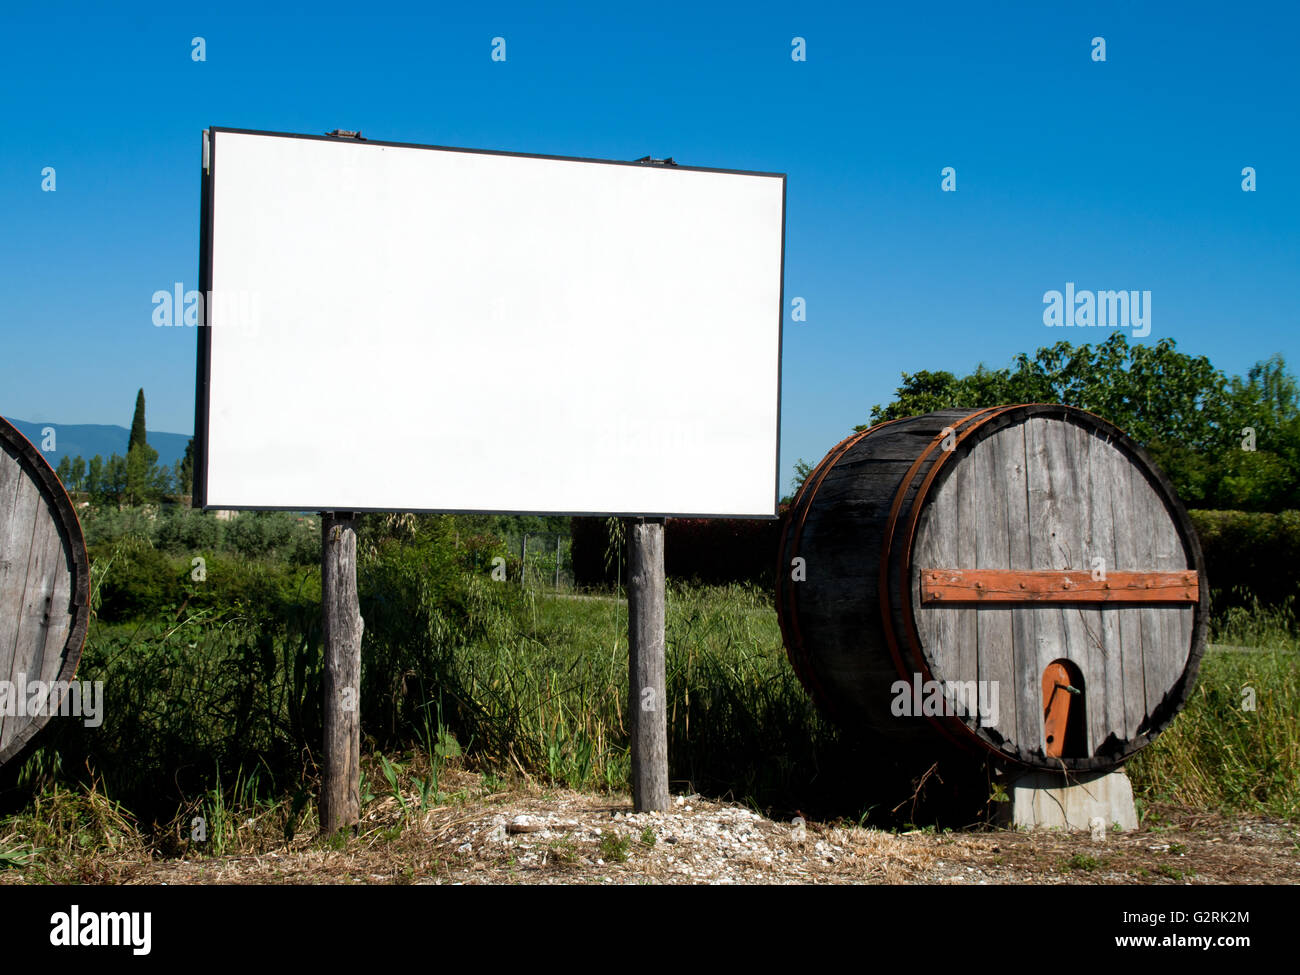 blank billboard in the countryside cultivated with traditional wooden barrel - Stock Image